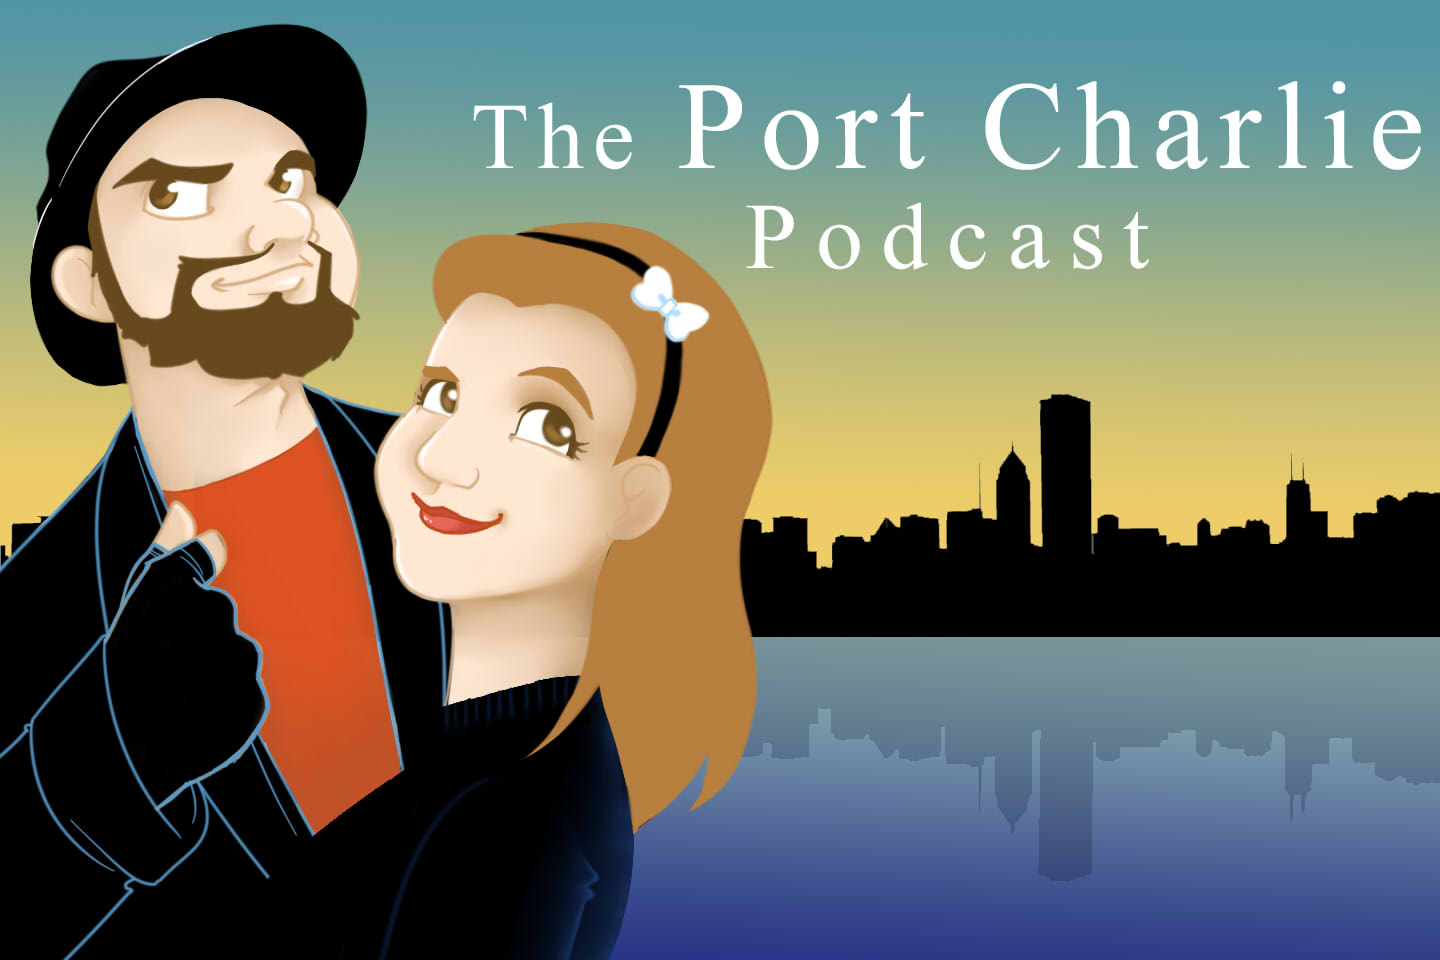 The Port Charlie Podcast – RT Gomer Productions